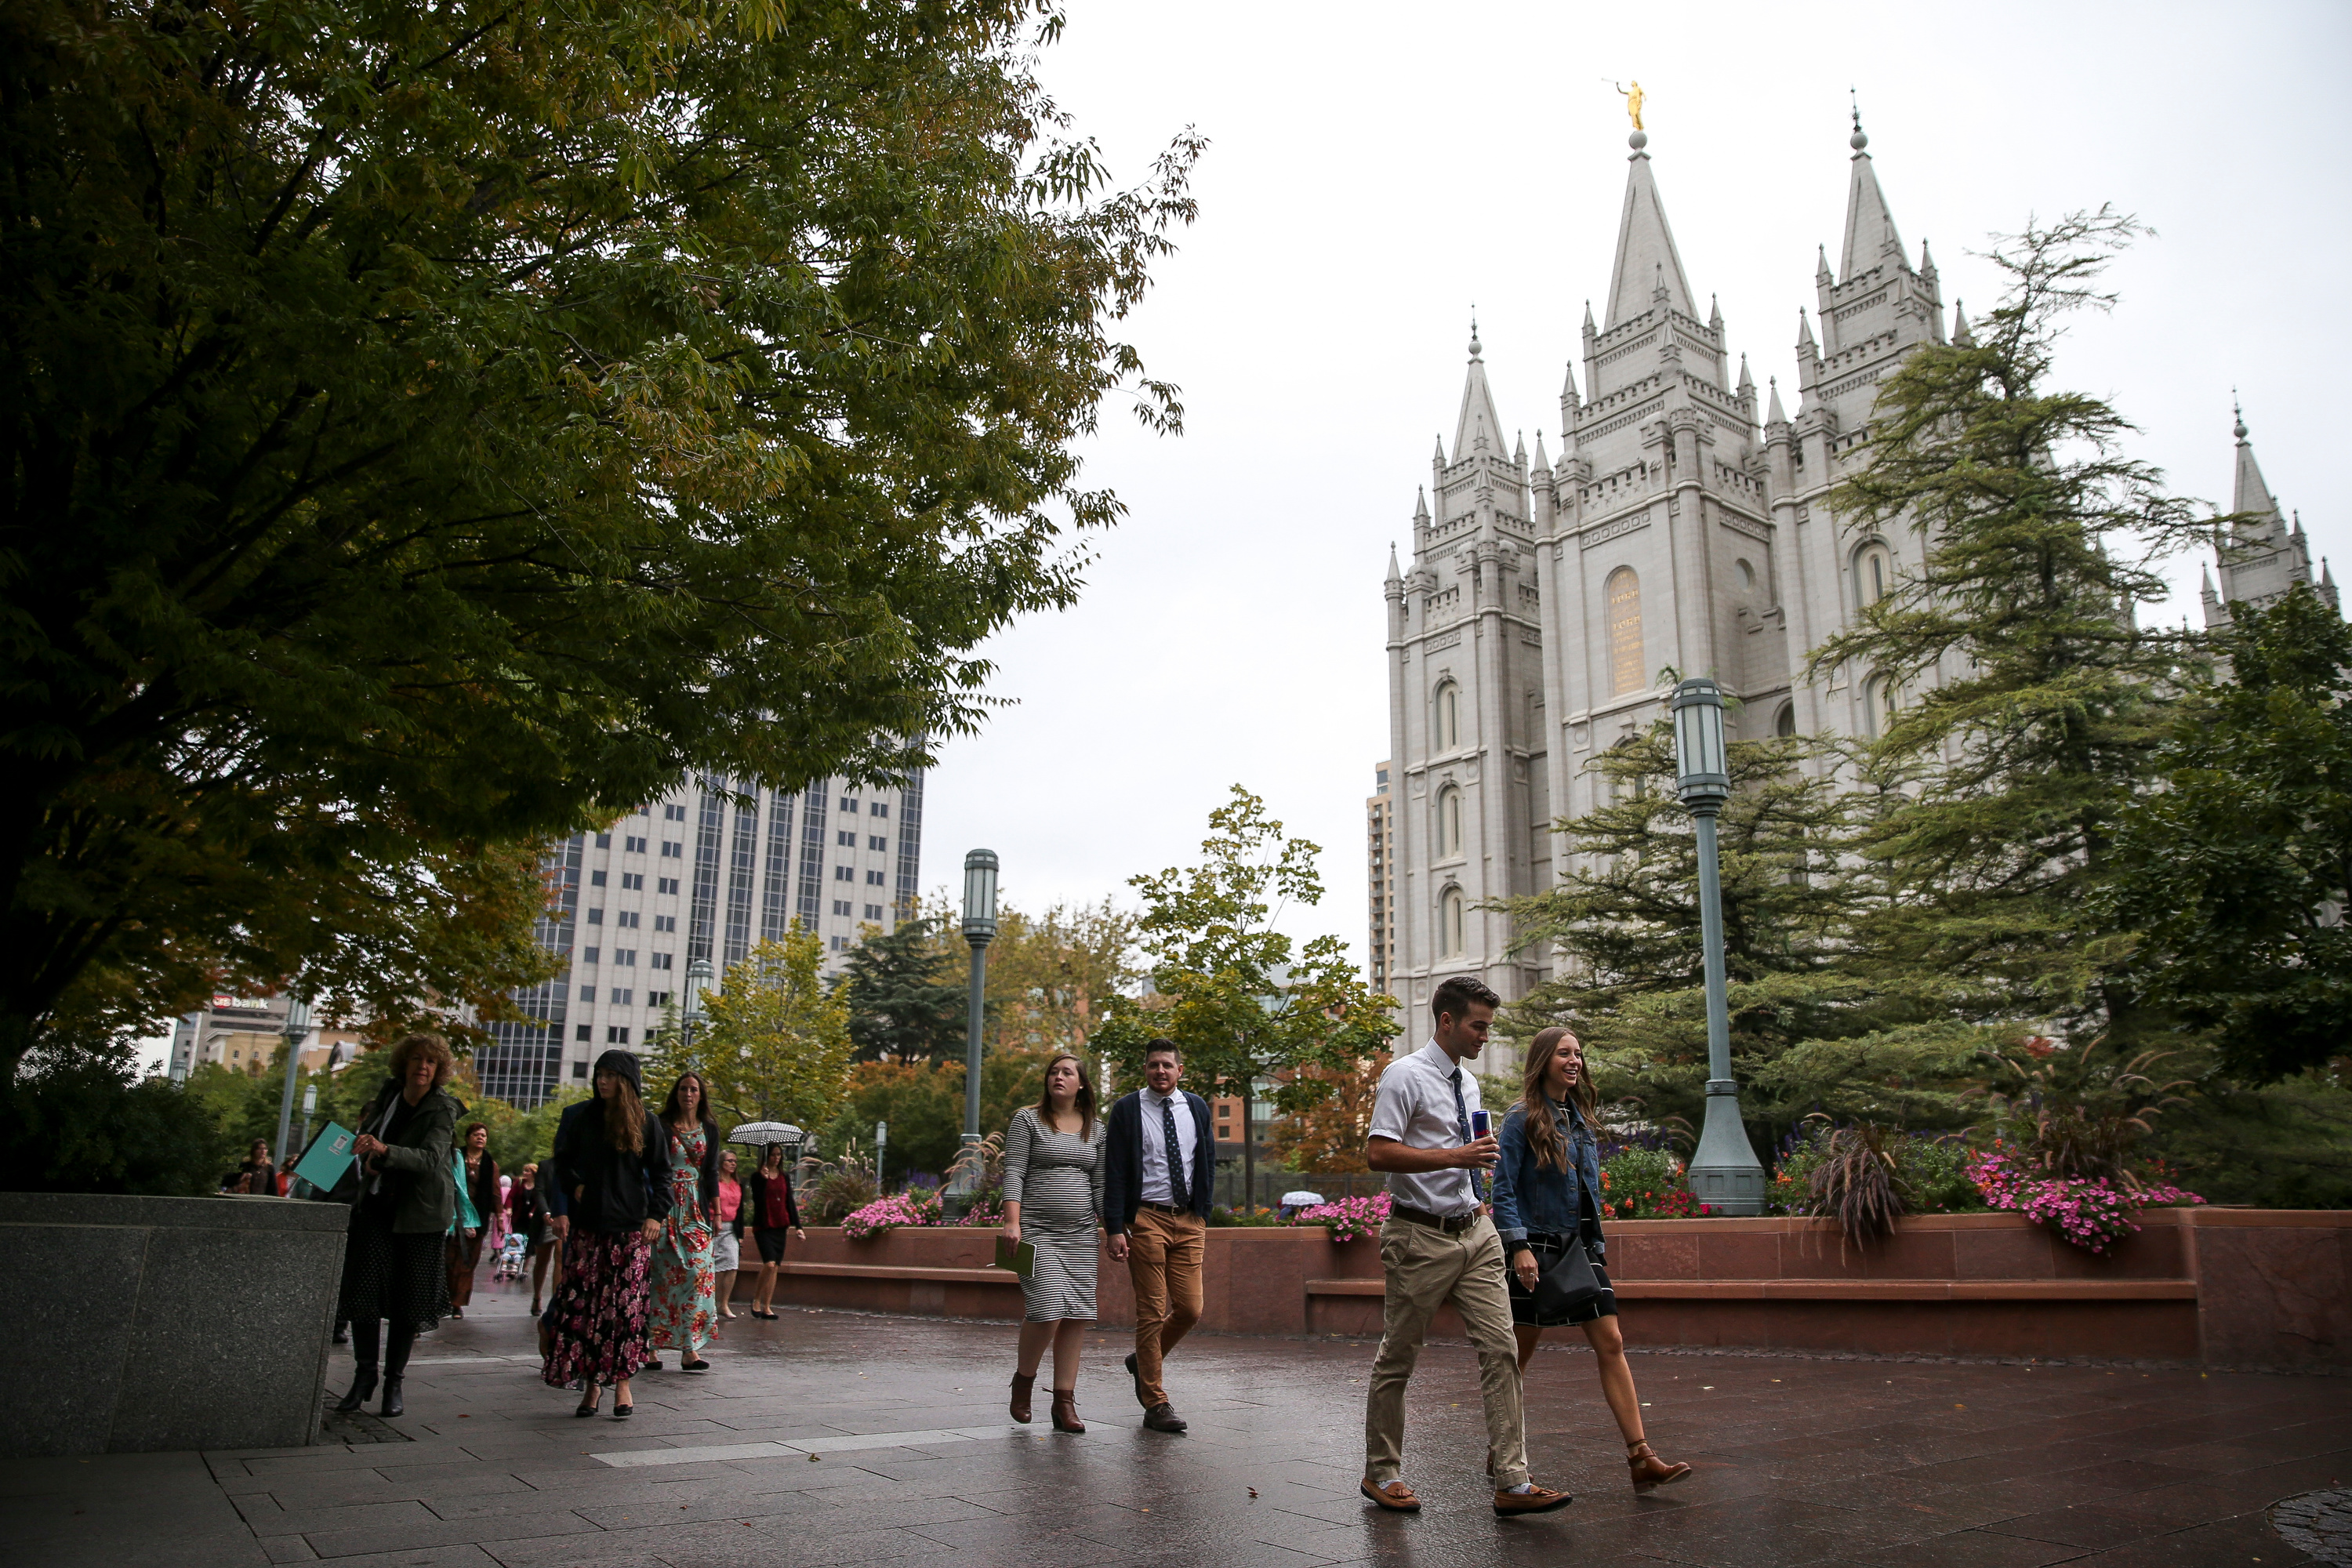 People walk past the Salt Lake Temple on the way to the Conference Center before the Saturday morning session of the Church's 187th Semiannual General Conference in Salt Lake City on Saturday, Sept. 30, 2017.